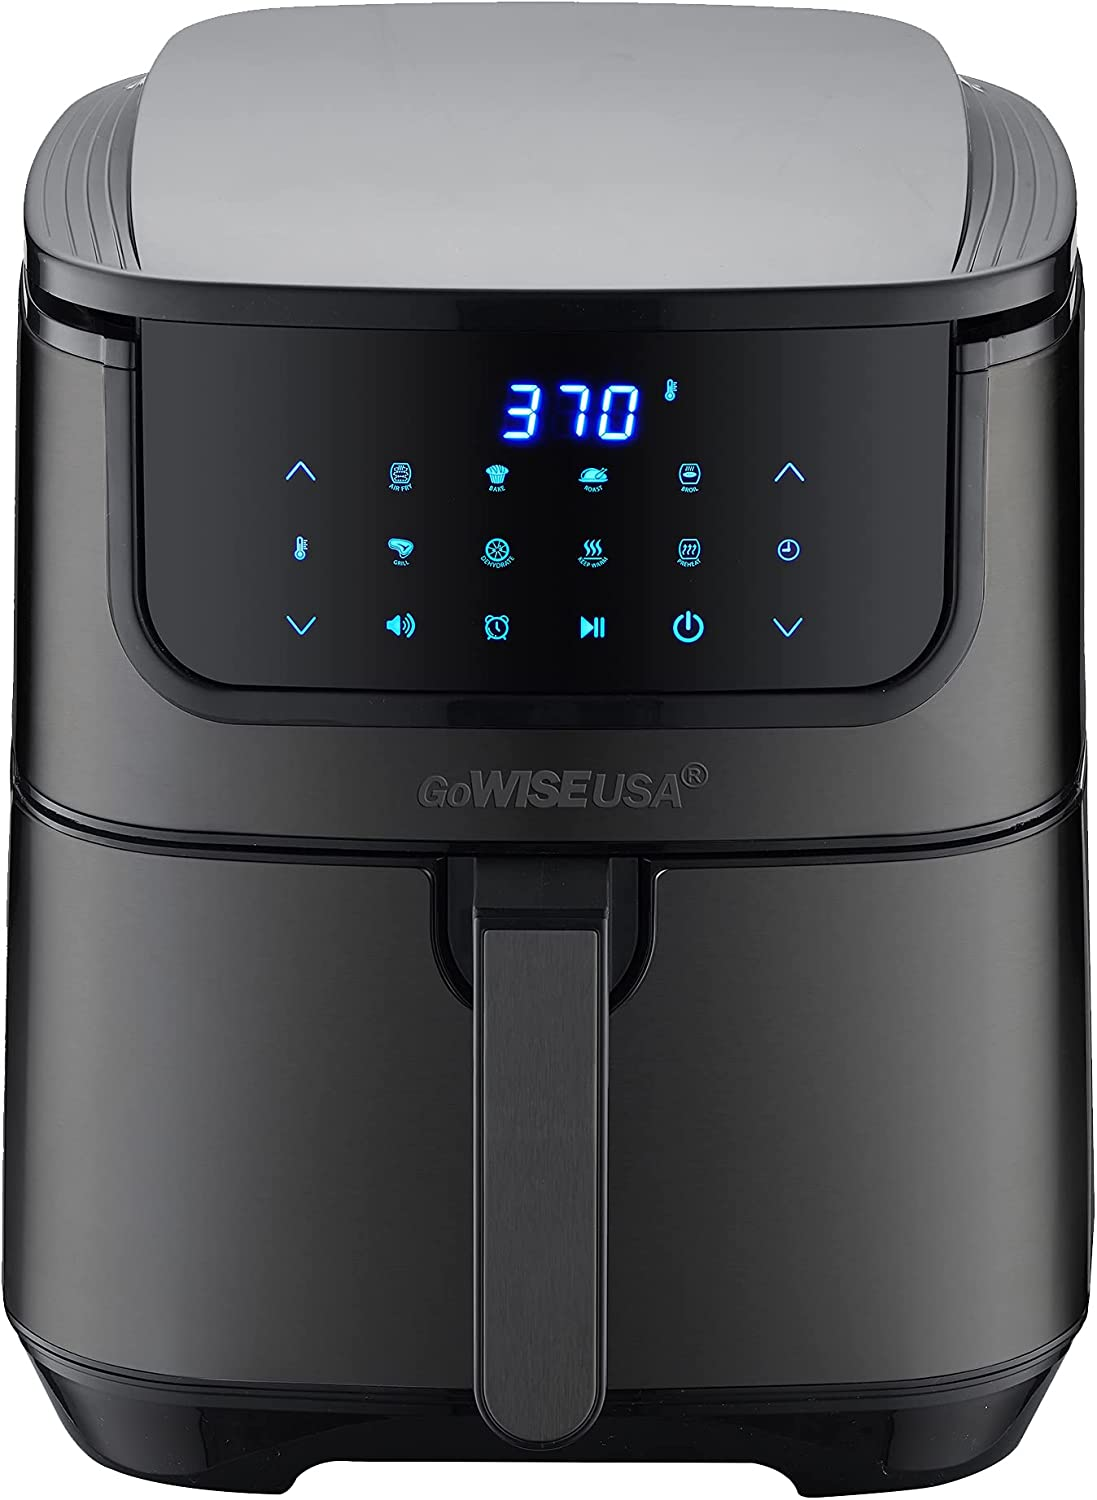 GoWISE USA 7-Quart Air Fryer & Dehydrator MAX STEEL XL- with Touchscreen Display with Stackable Dehydrating Racks with Preheat & Mute Functions + 100 Recipes (Black Stainless Steel)